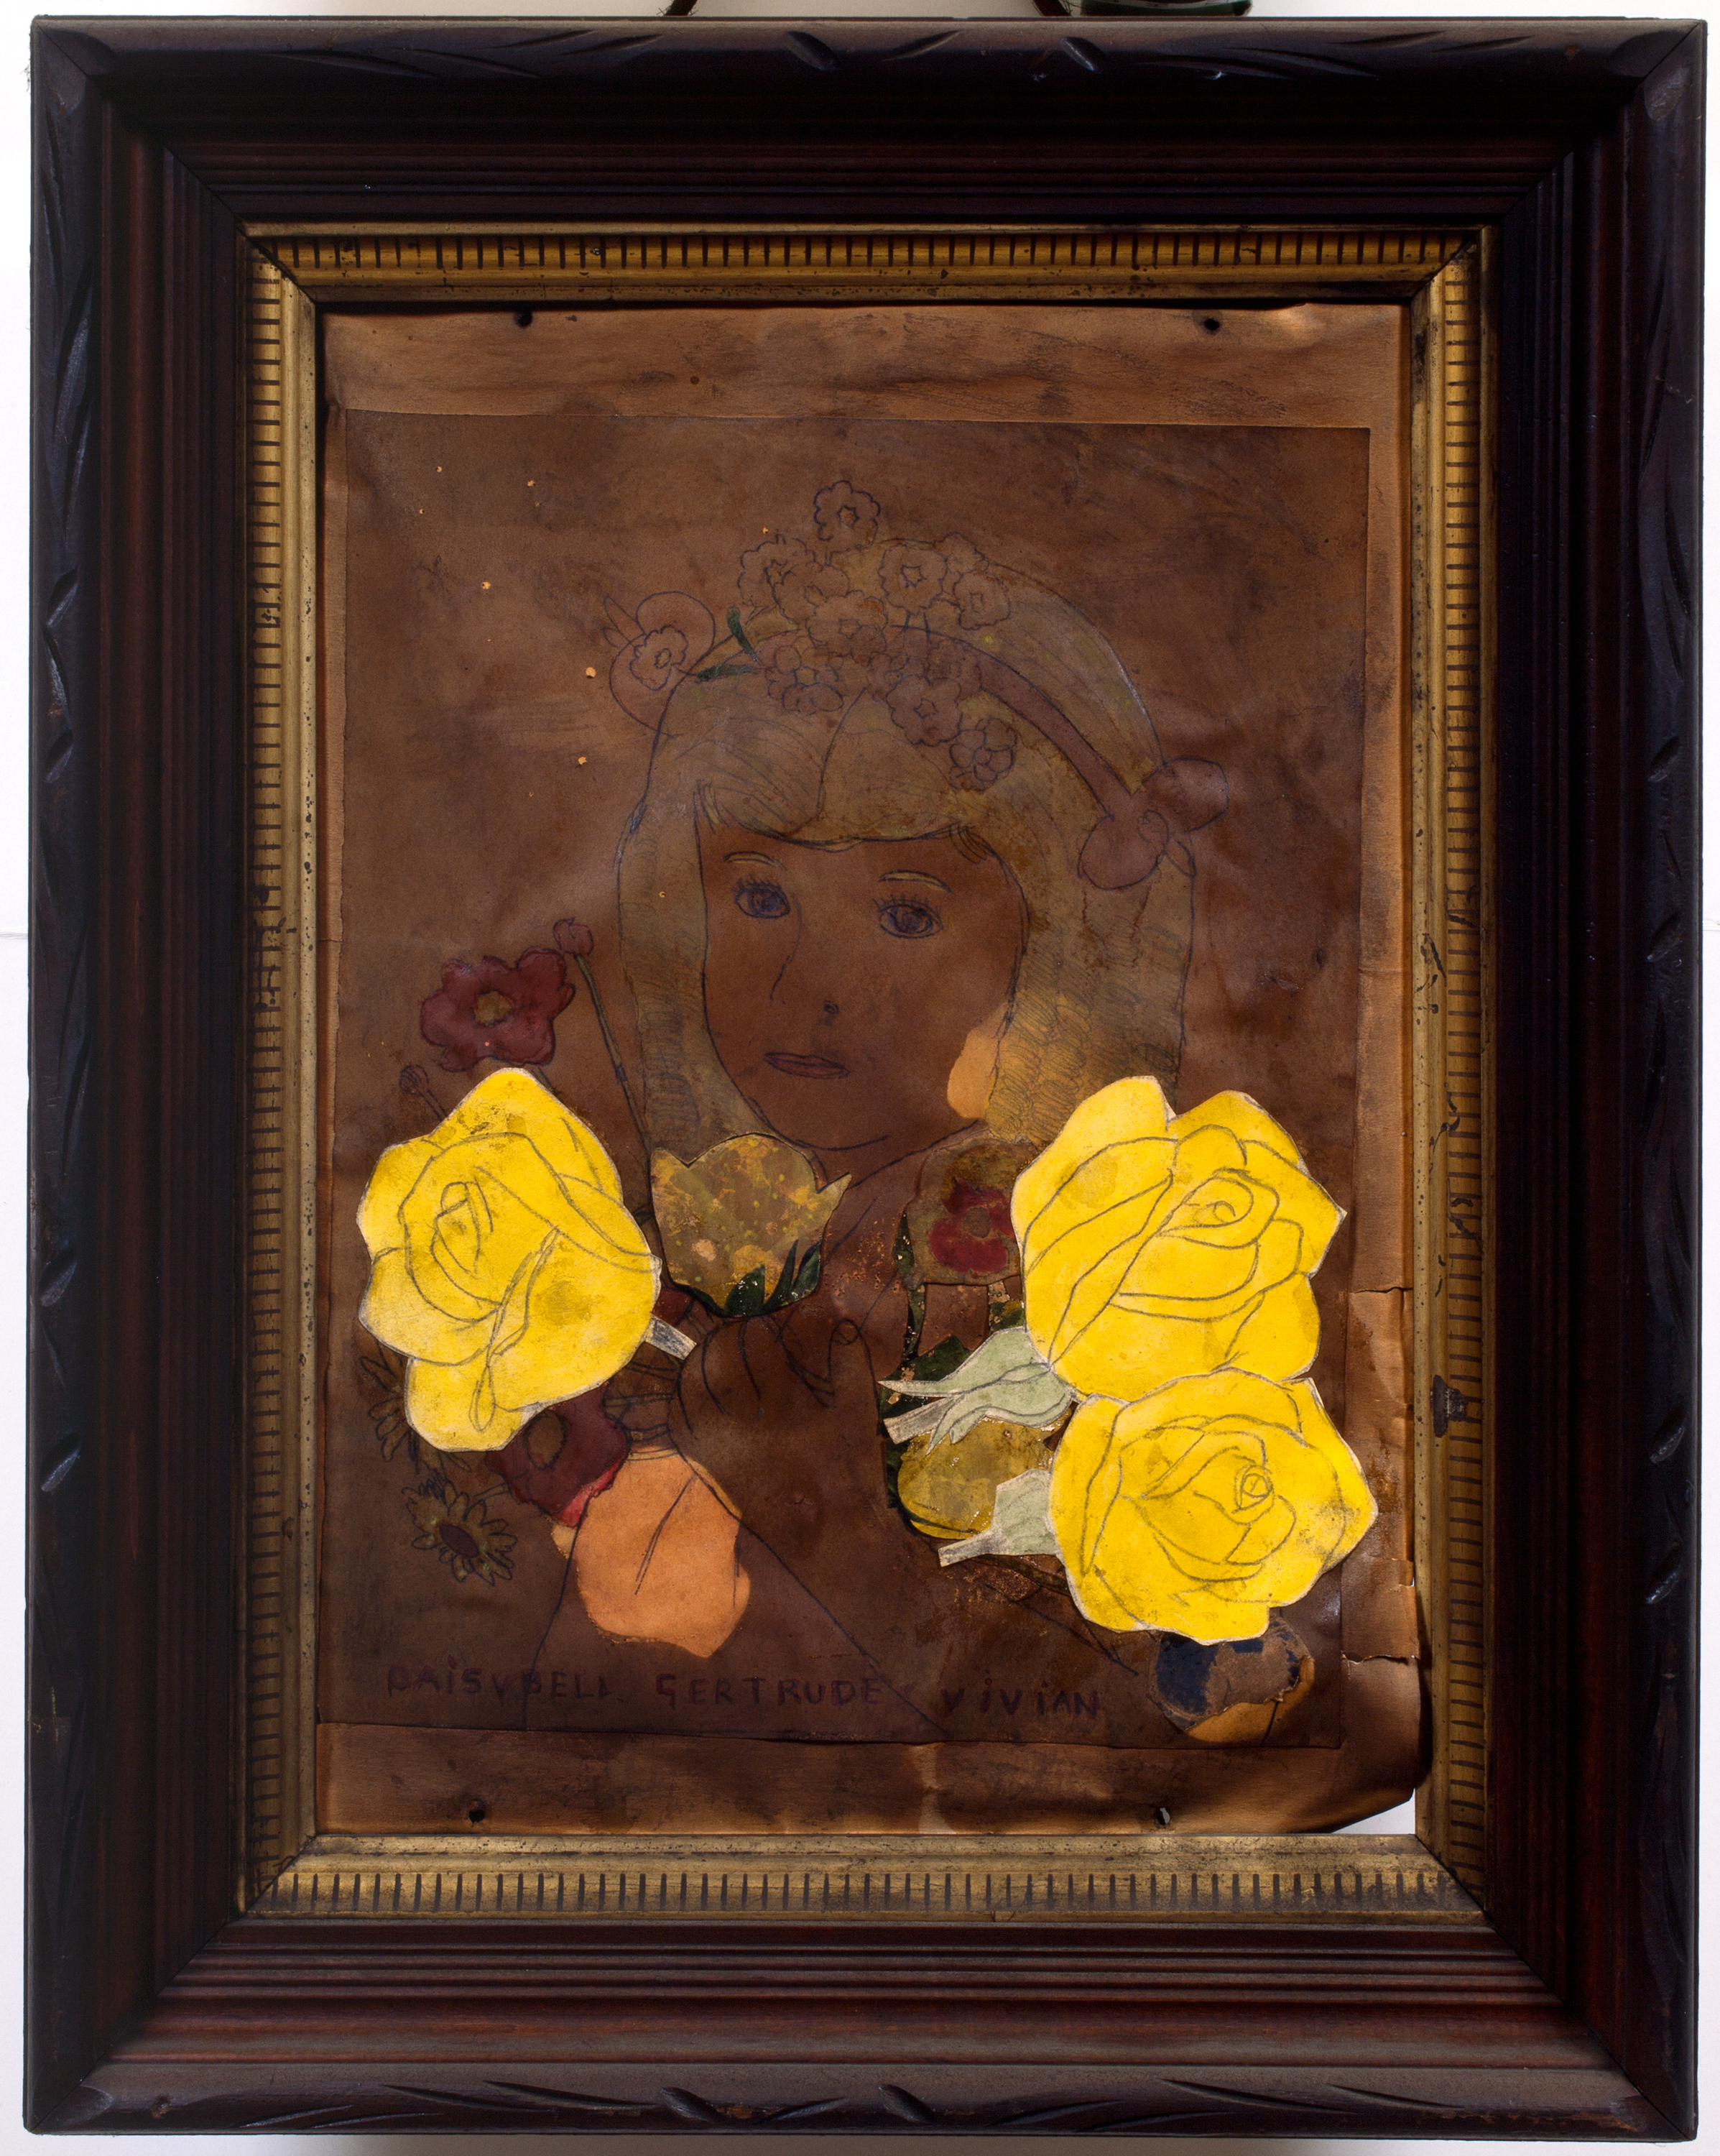 Henry Darger (American, 1892-1973). Joyce Vivian, ca. 1940s. Mixed media on paper, 18 ½ x 14 ½ in. (framed). Photo by John Faier.Collection of Robert A. Roth